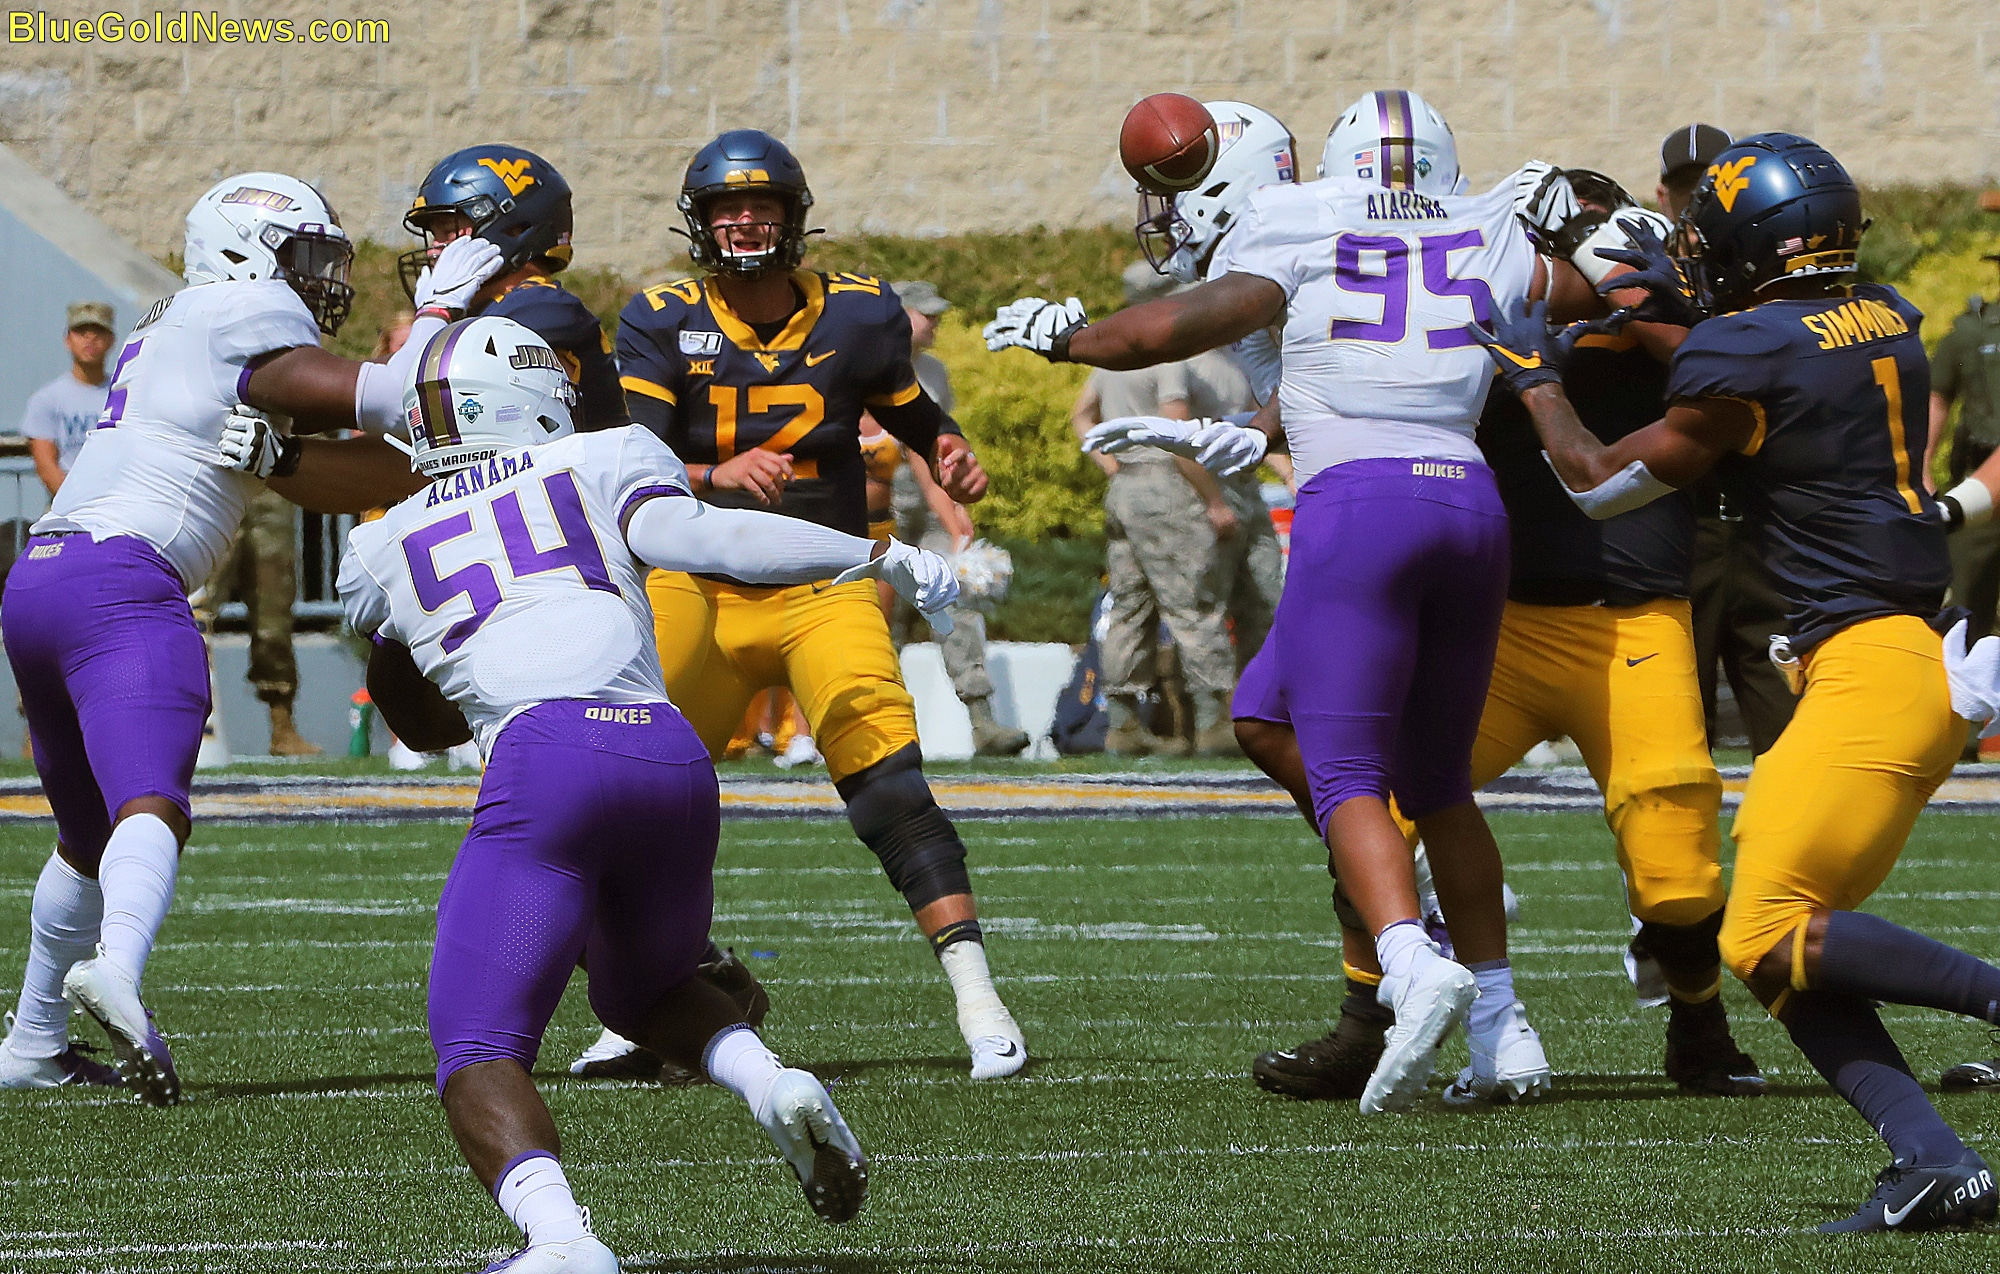 West Virginia quarterback Austin Kendall (12) threads the needle with a pass to T.J. Simmons (1)